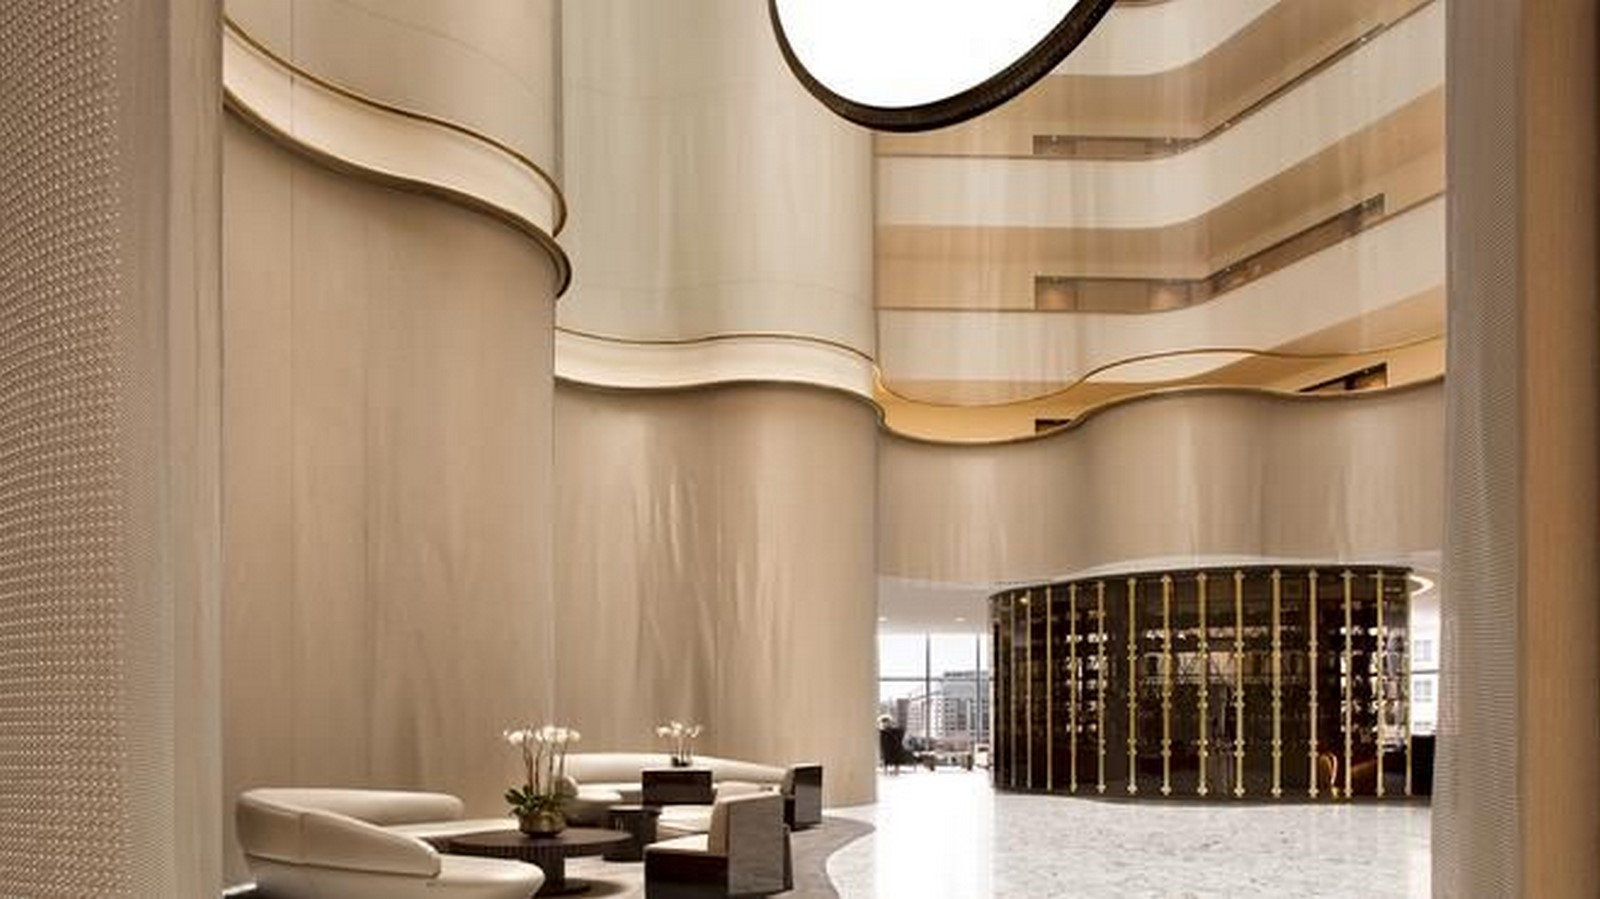 Points to keep in mind while designing a hotel interior